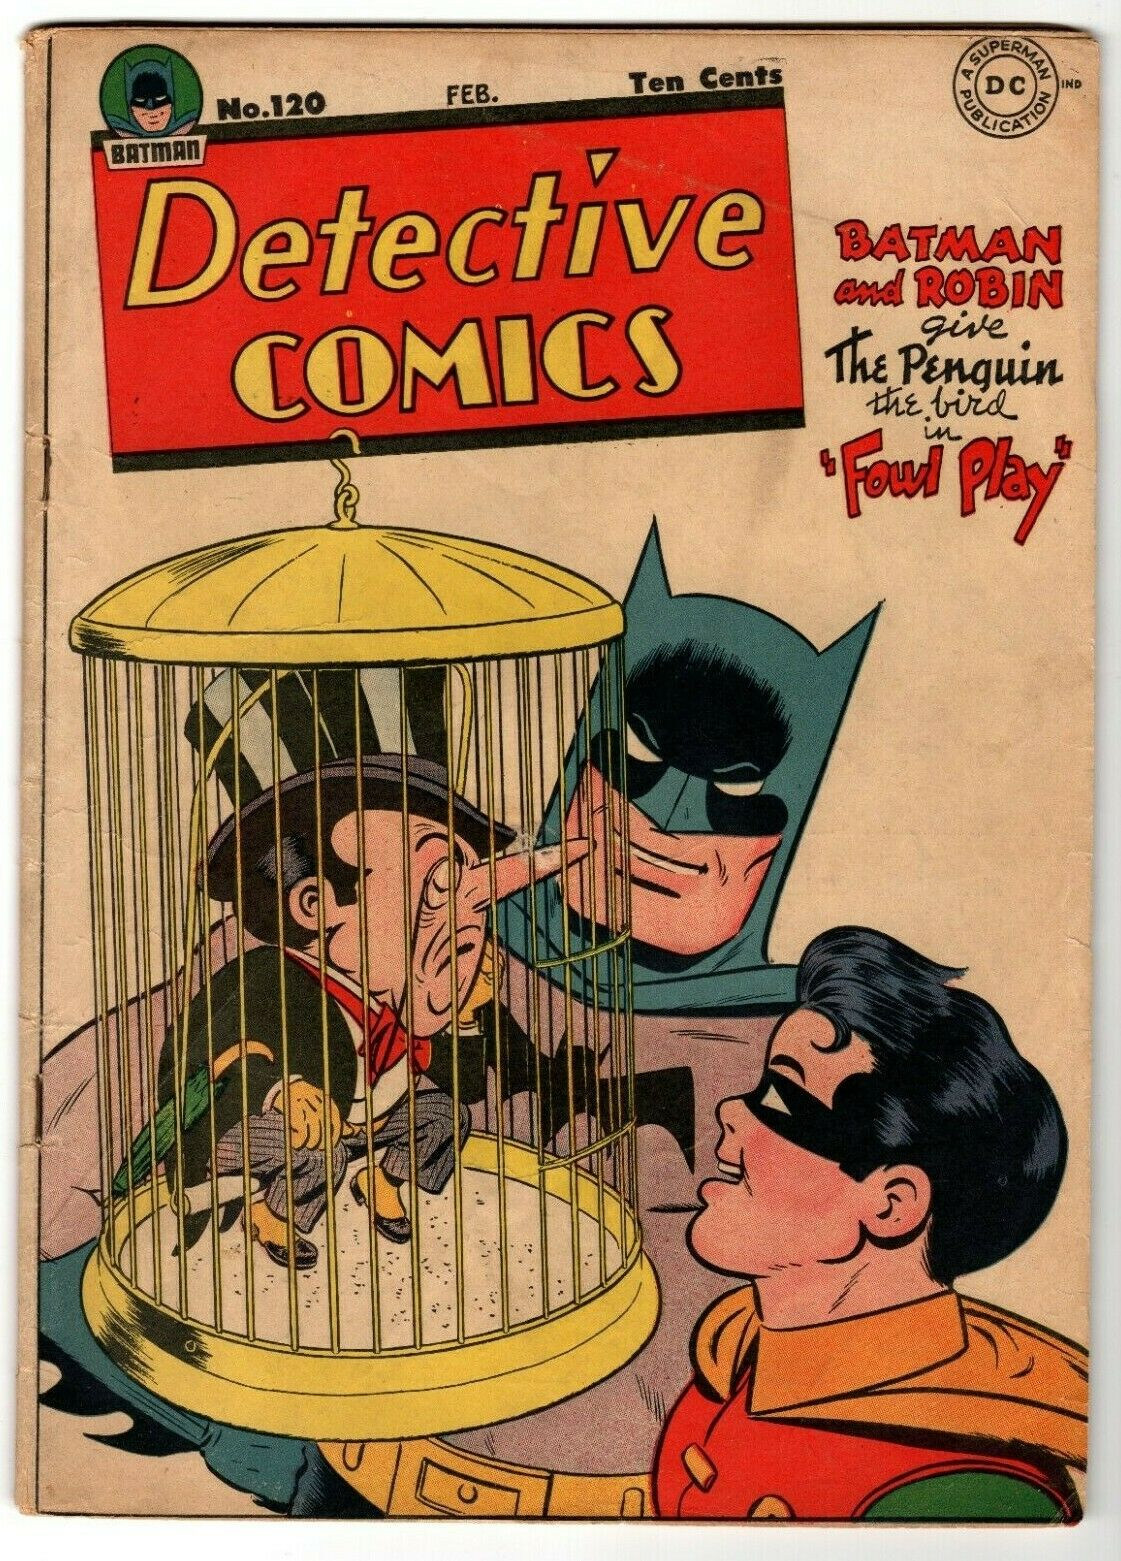 Detective Comics #120 1947 DC Batman & Robin vs The Penguin 5.5 Fine- A12G937